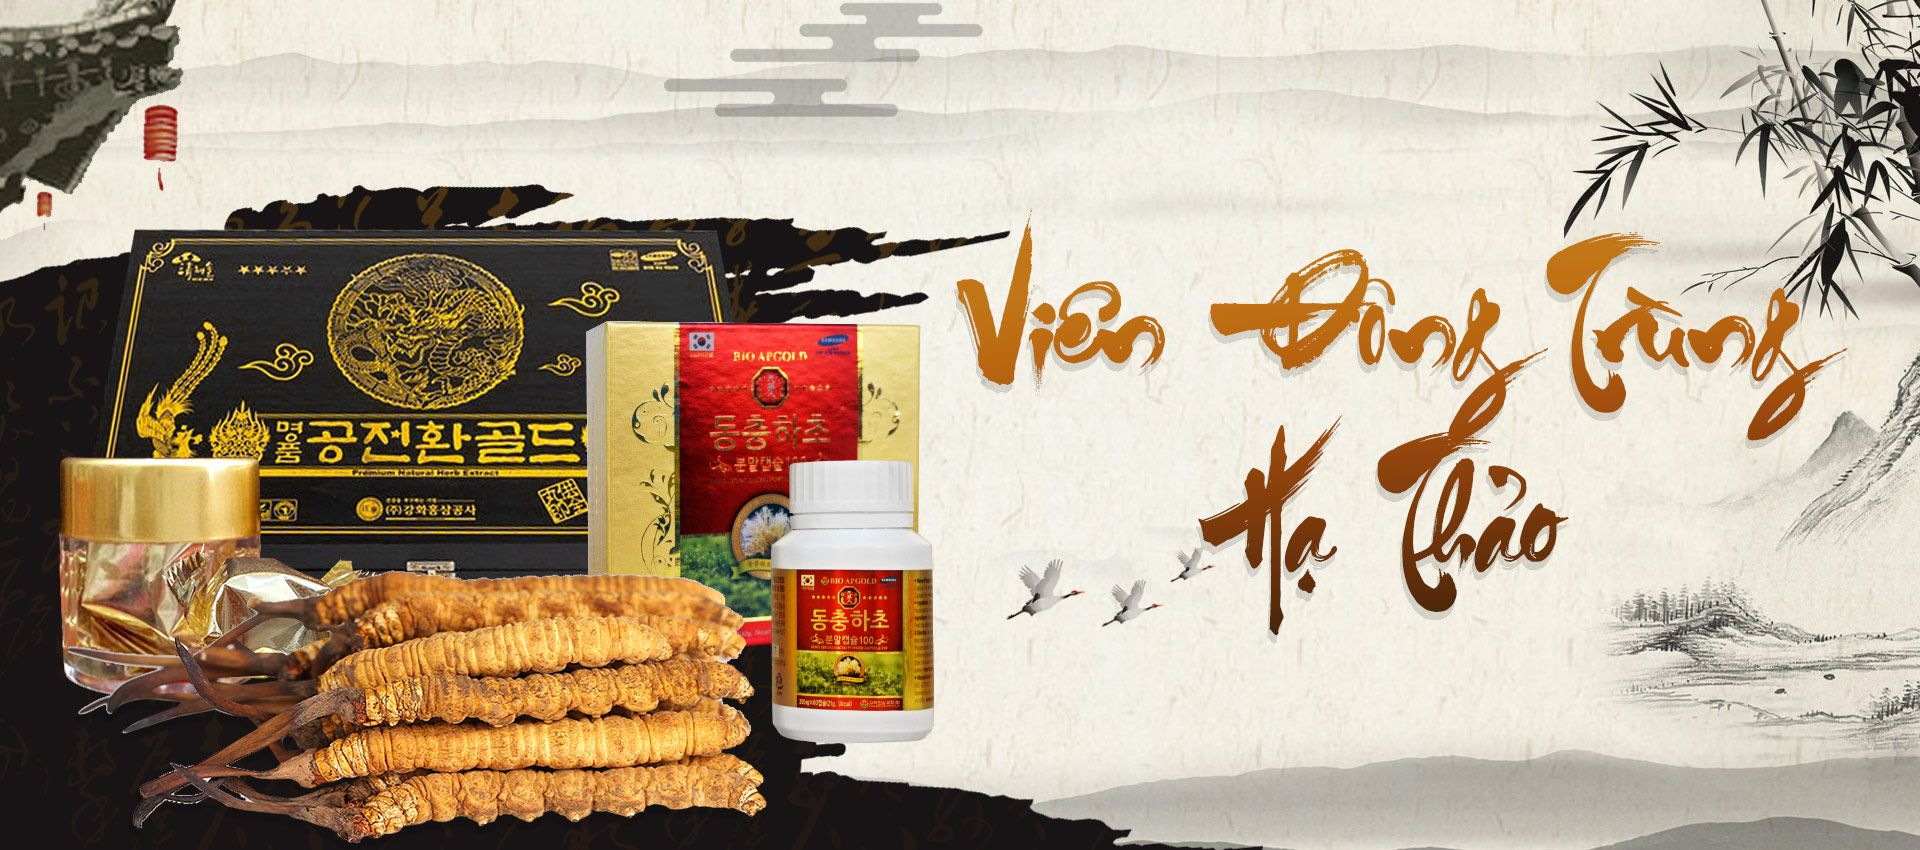 banner danh muc vien dong trung pc